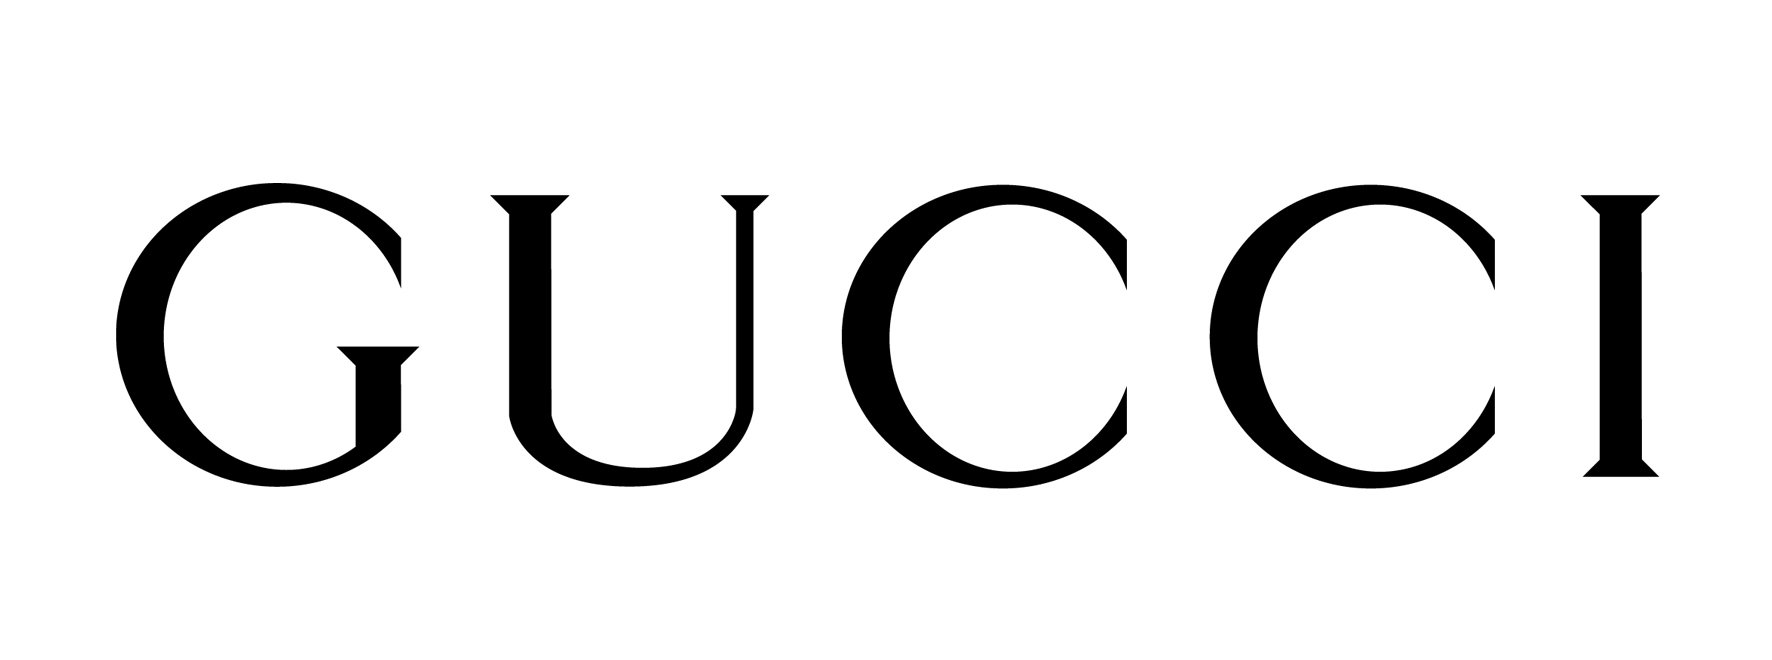 Gucci logo gucci symbol meaning history and evolution font of the gucci logo biocorpaavc Images